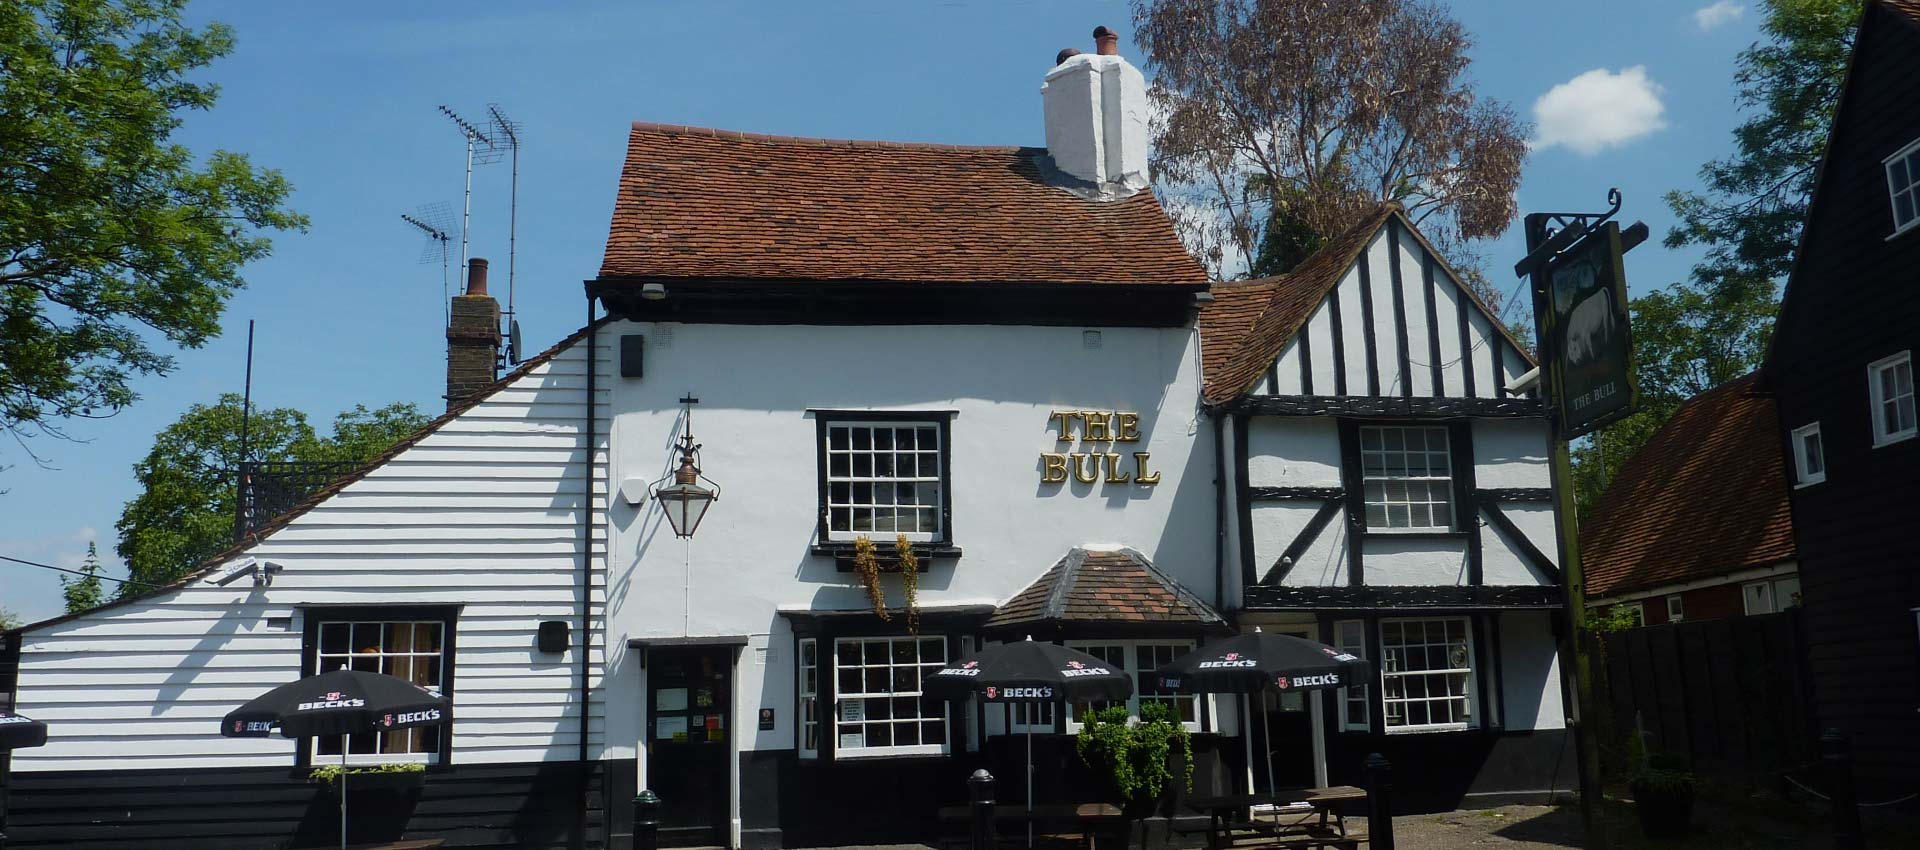 The Bull Pub In Corringham